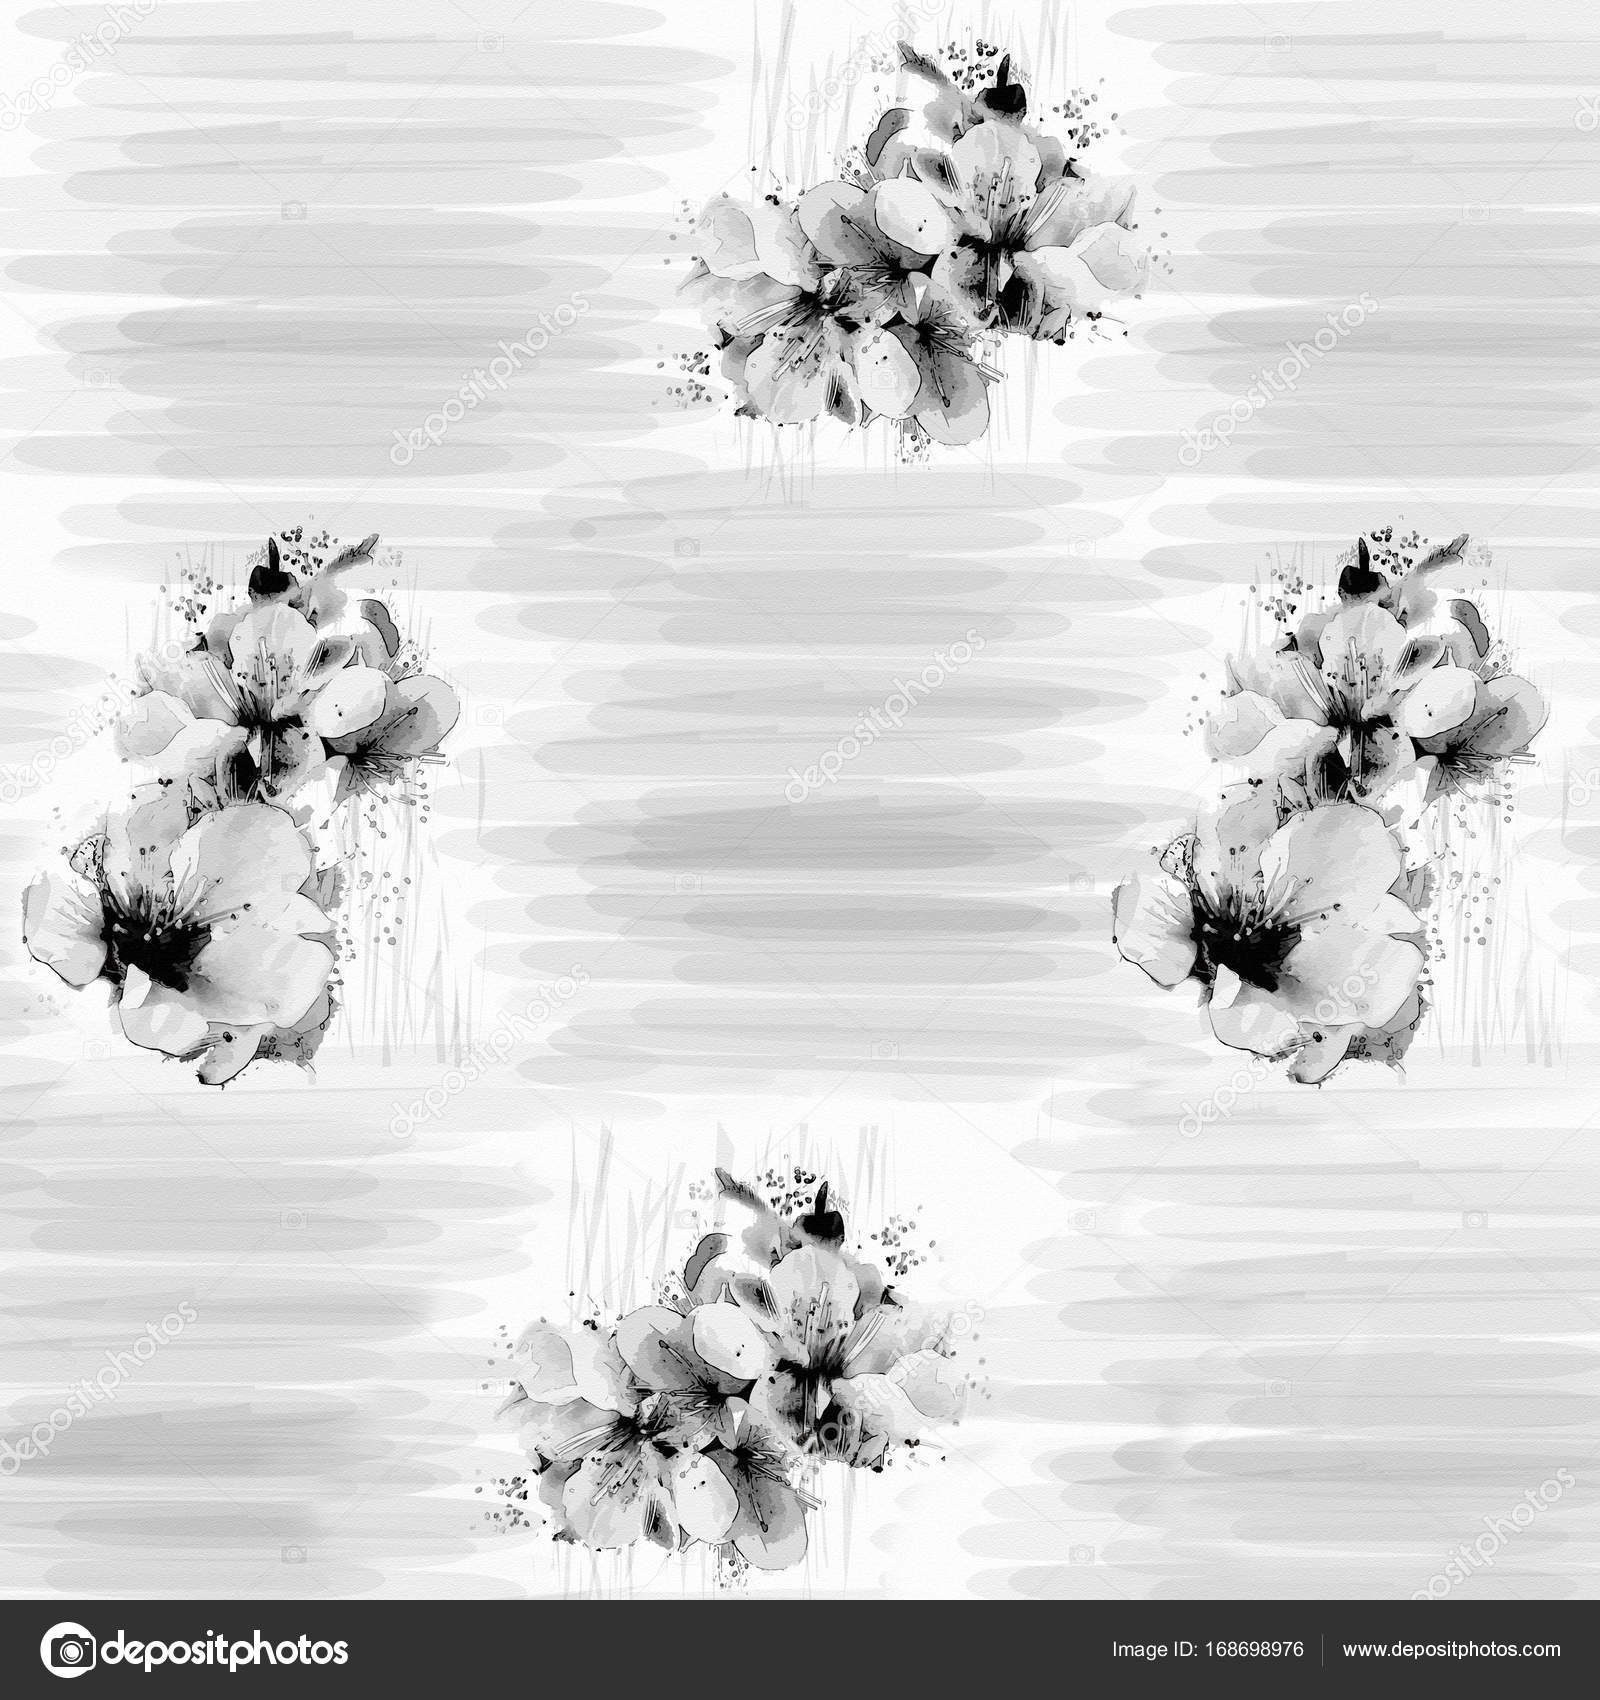 Black And White Floral Background With Stylized Flowers Of Cherry